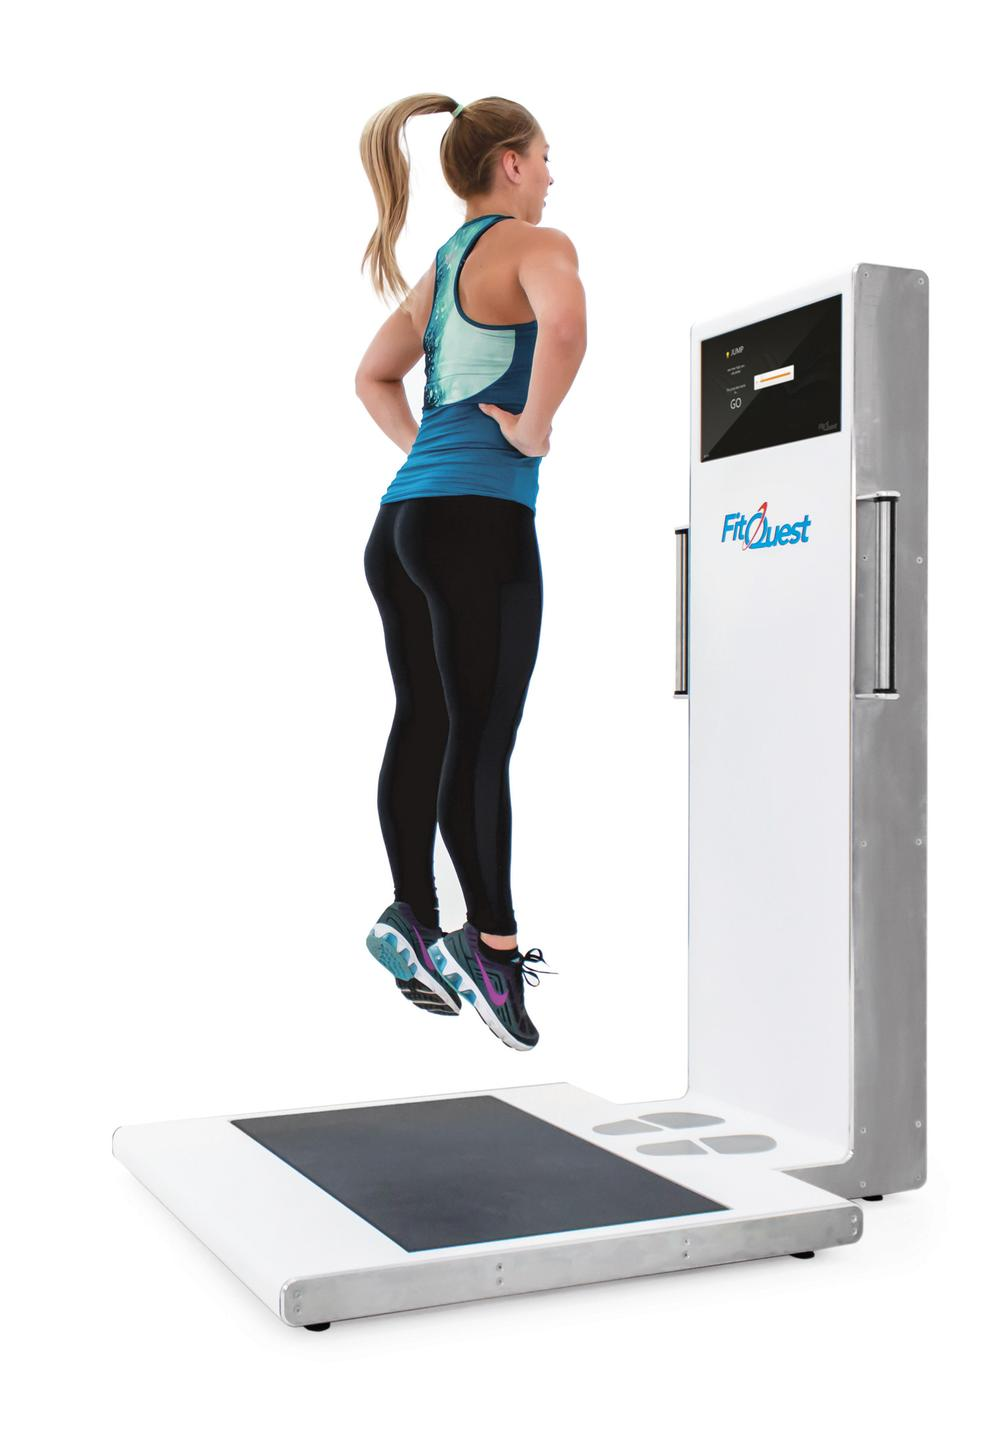 Explosive leg power, and upper and lower body strength are among the measures of fitness assessed by the device